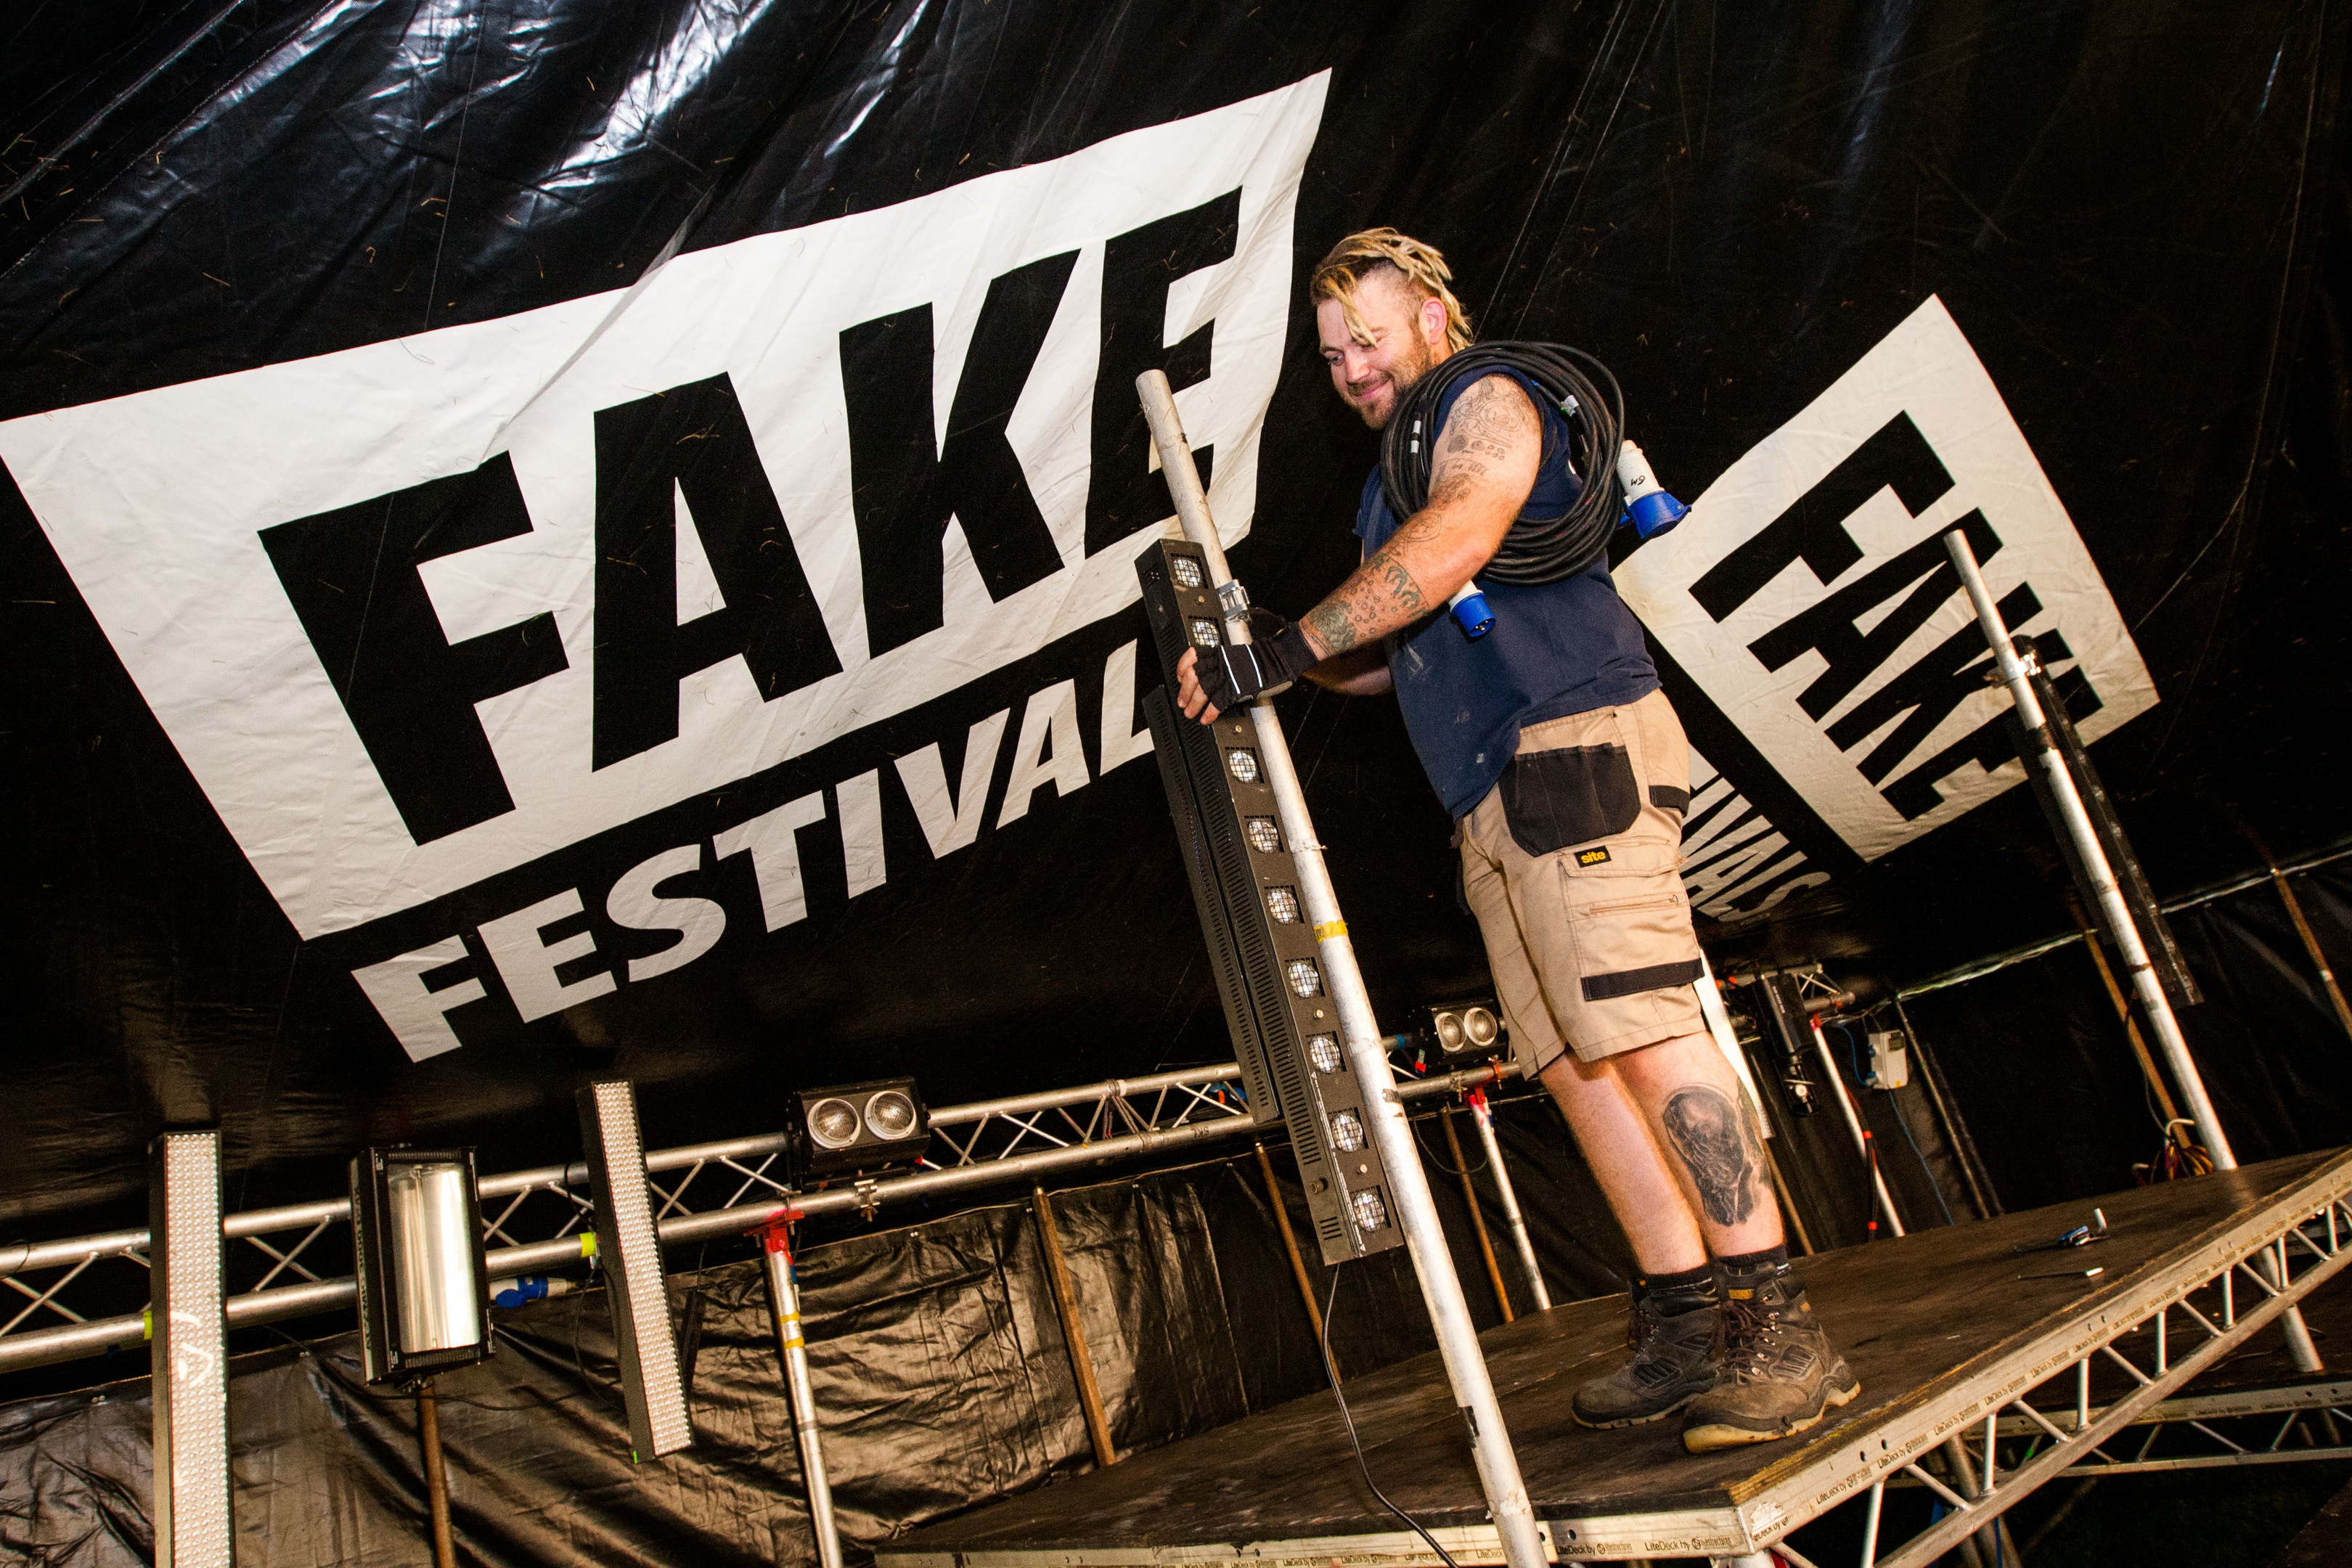 Technician Nigel Covill sets the stage at the Perth Fake Festival last year.